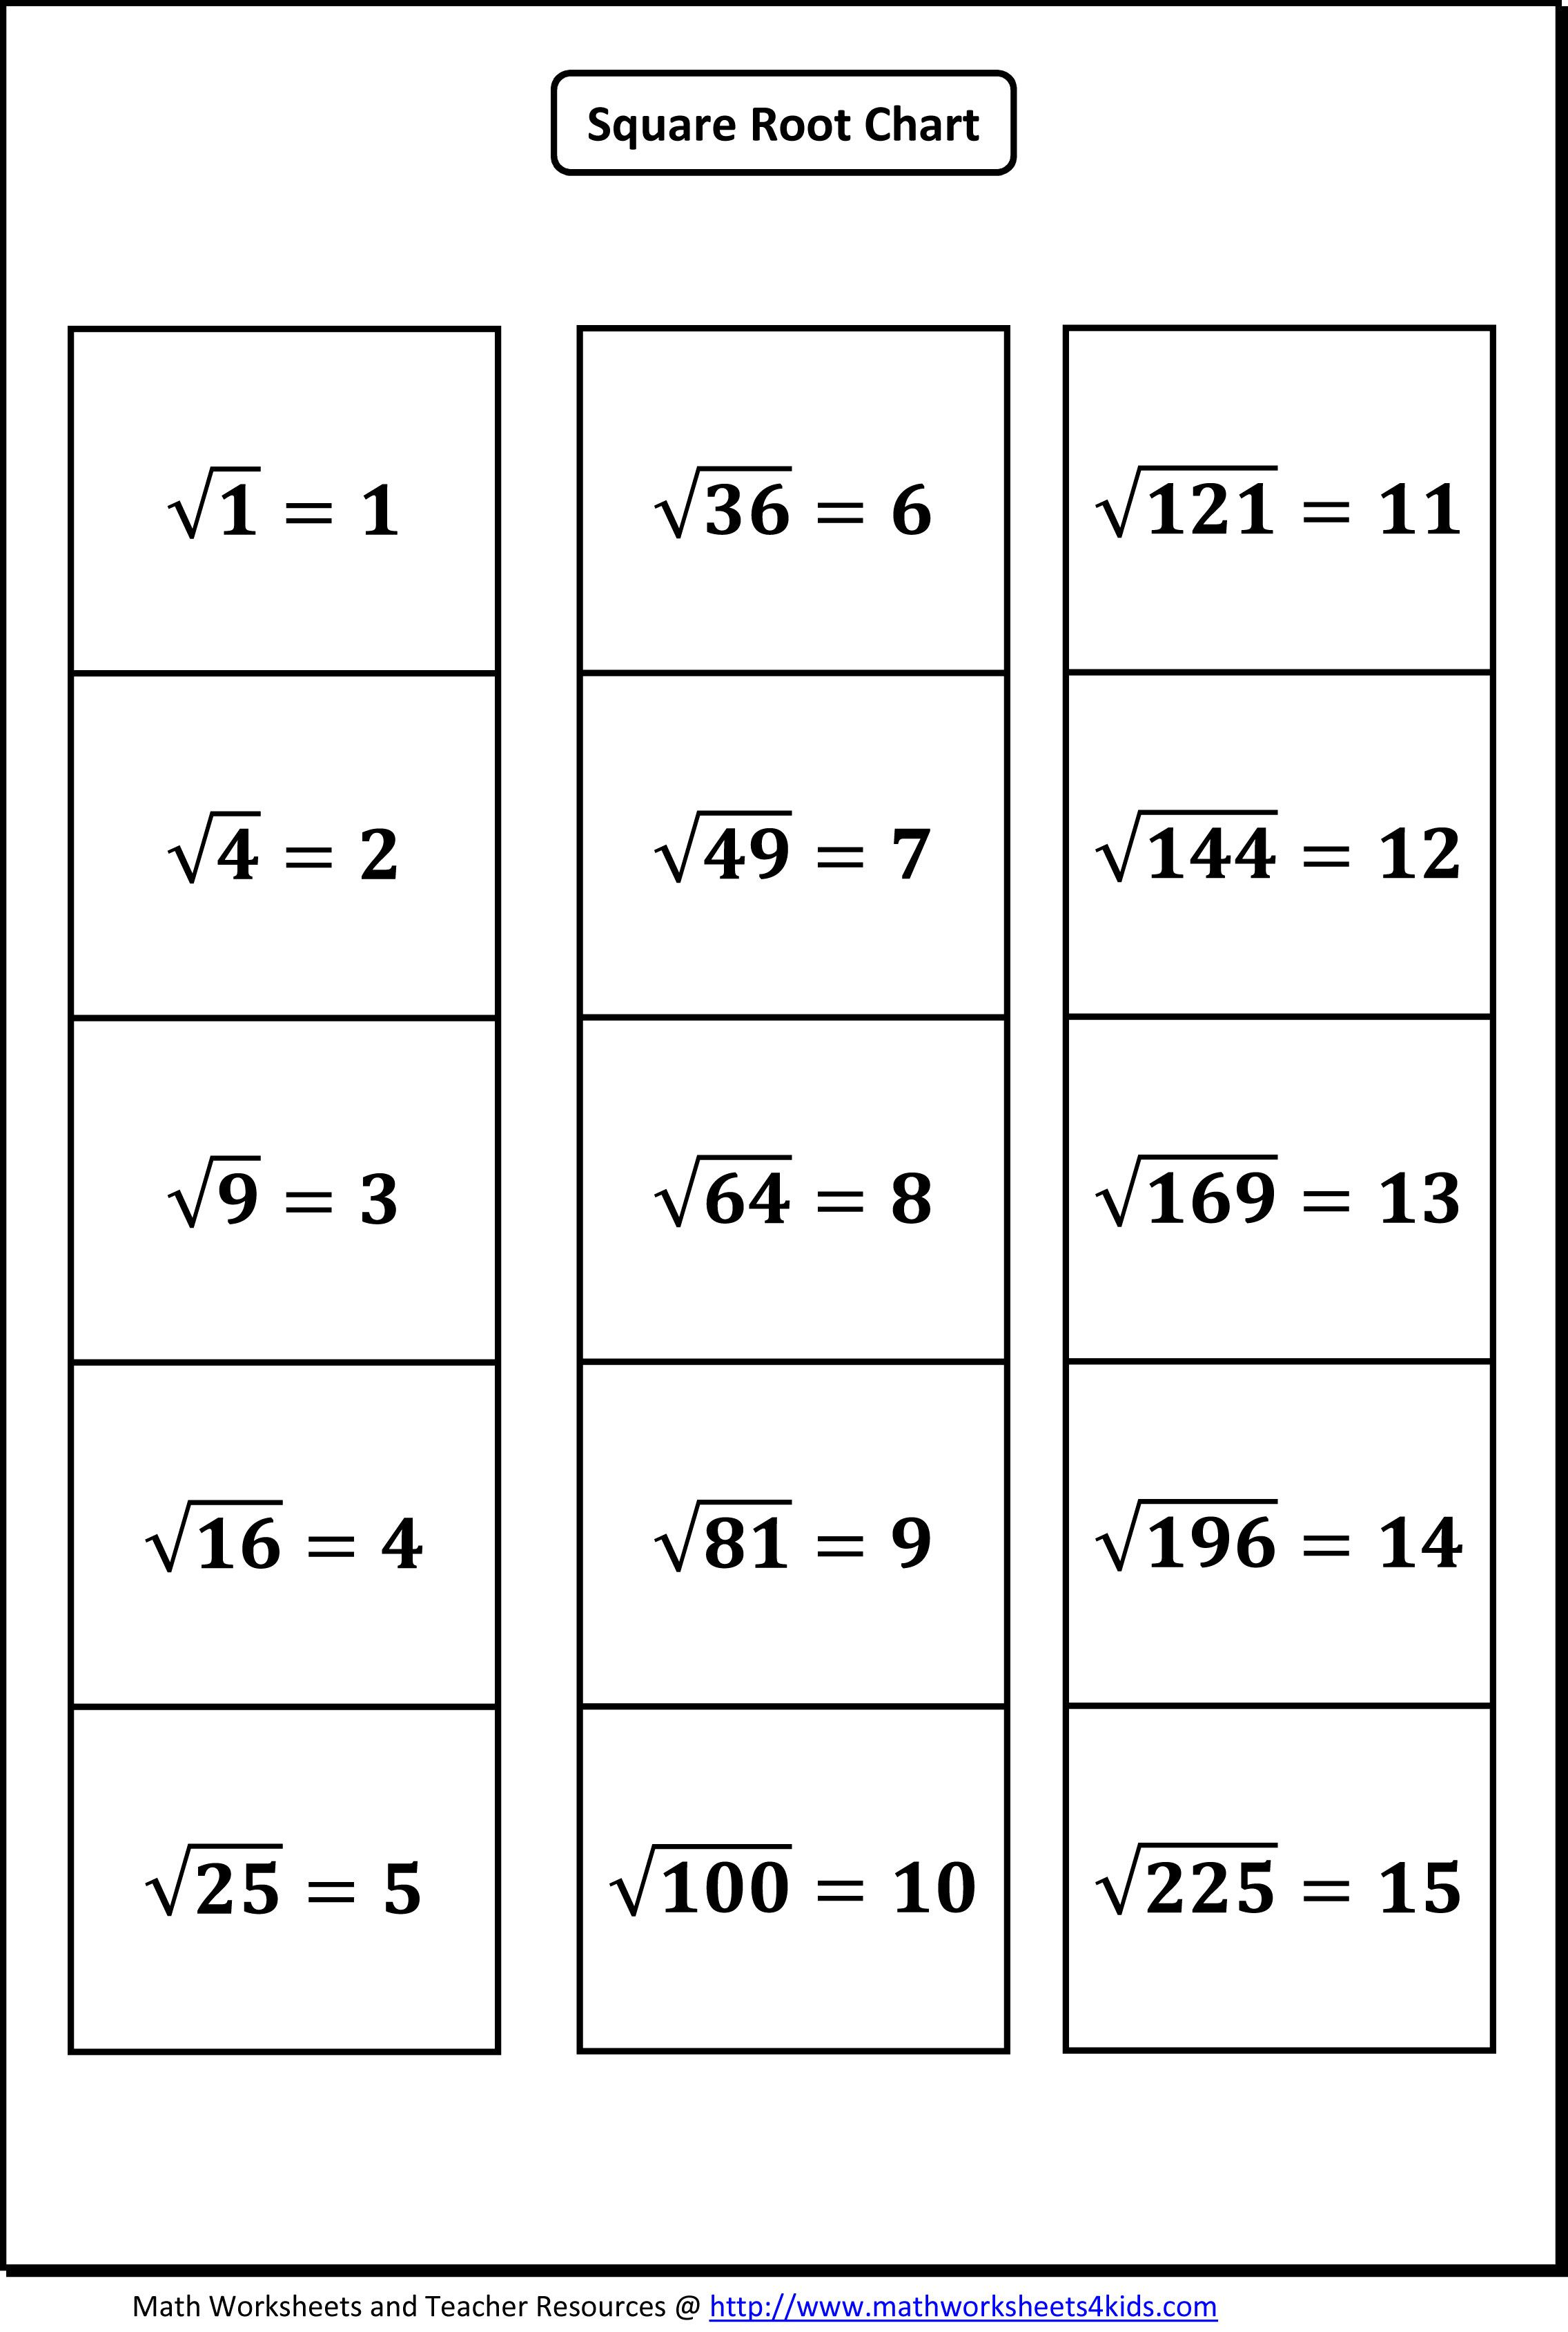 Worksheets Cube Roots Worksheet square root worksheets find the of whole numbers fractions and decimals